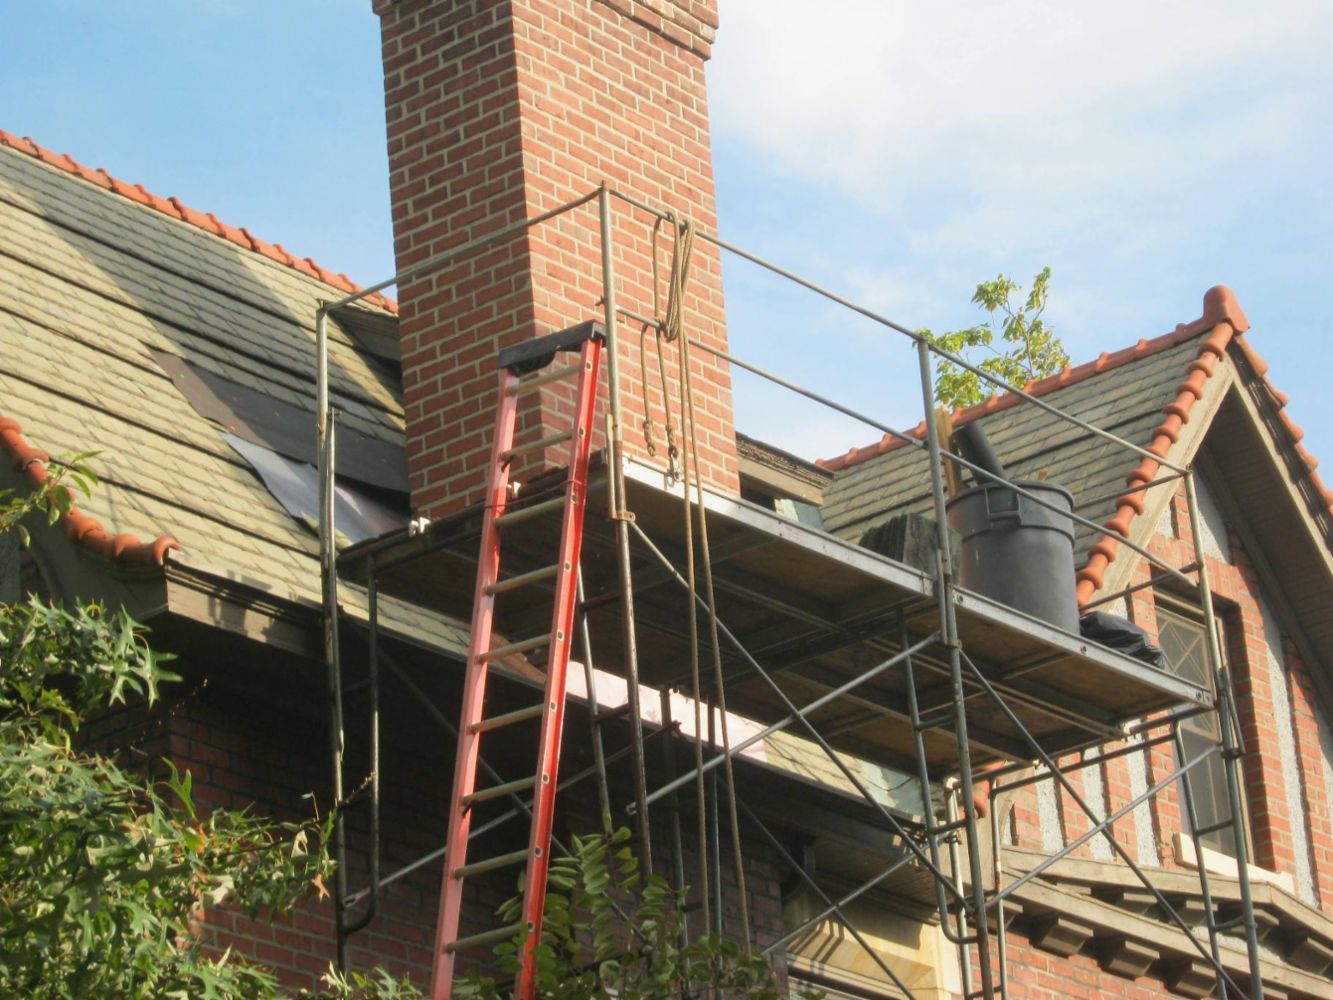 Roofing Company In Saint Louis Mo Renaissance Roofing Inc